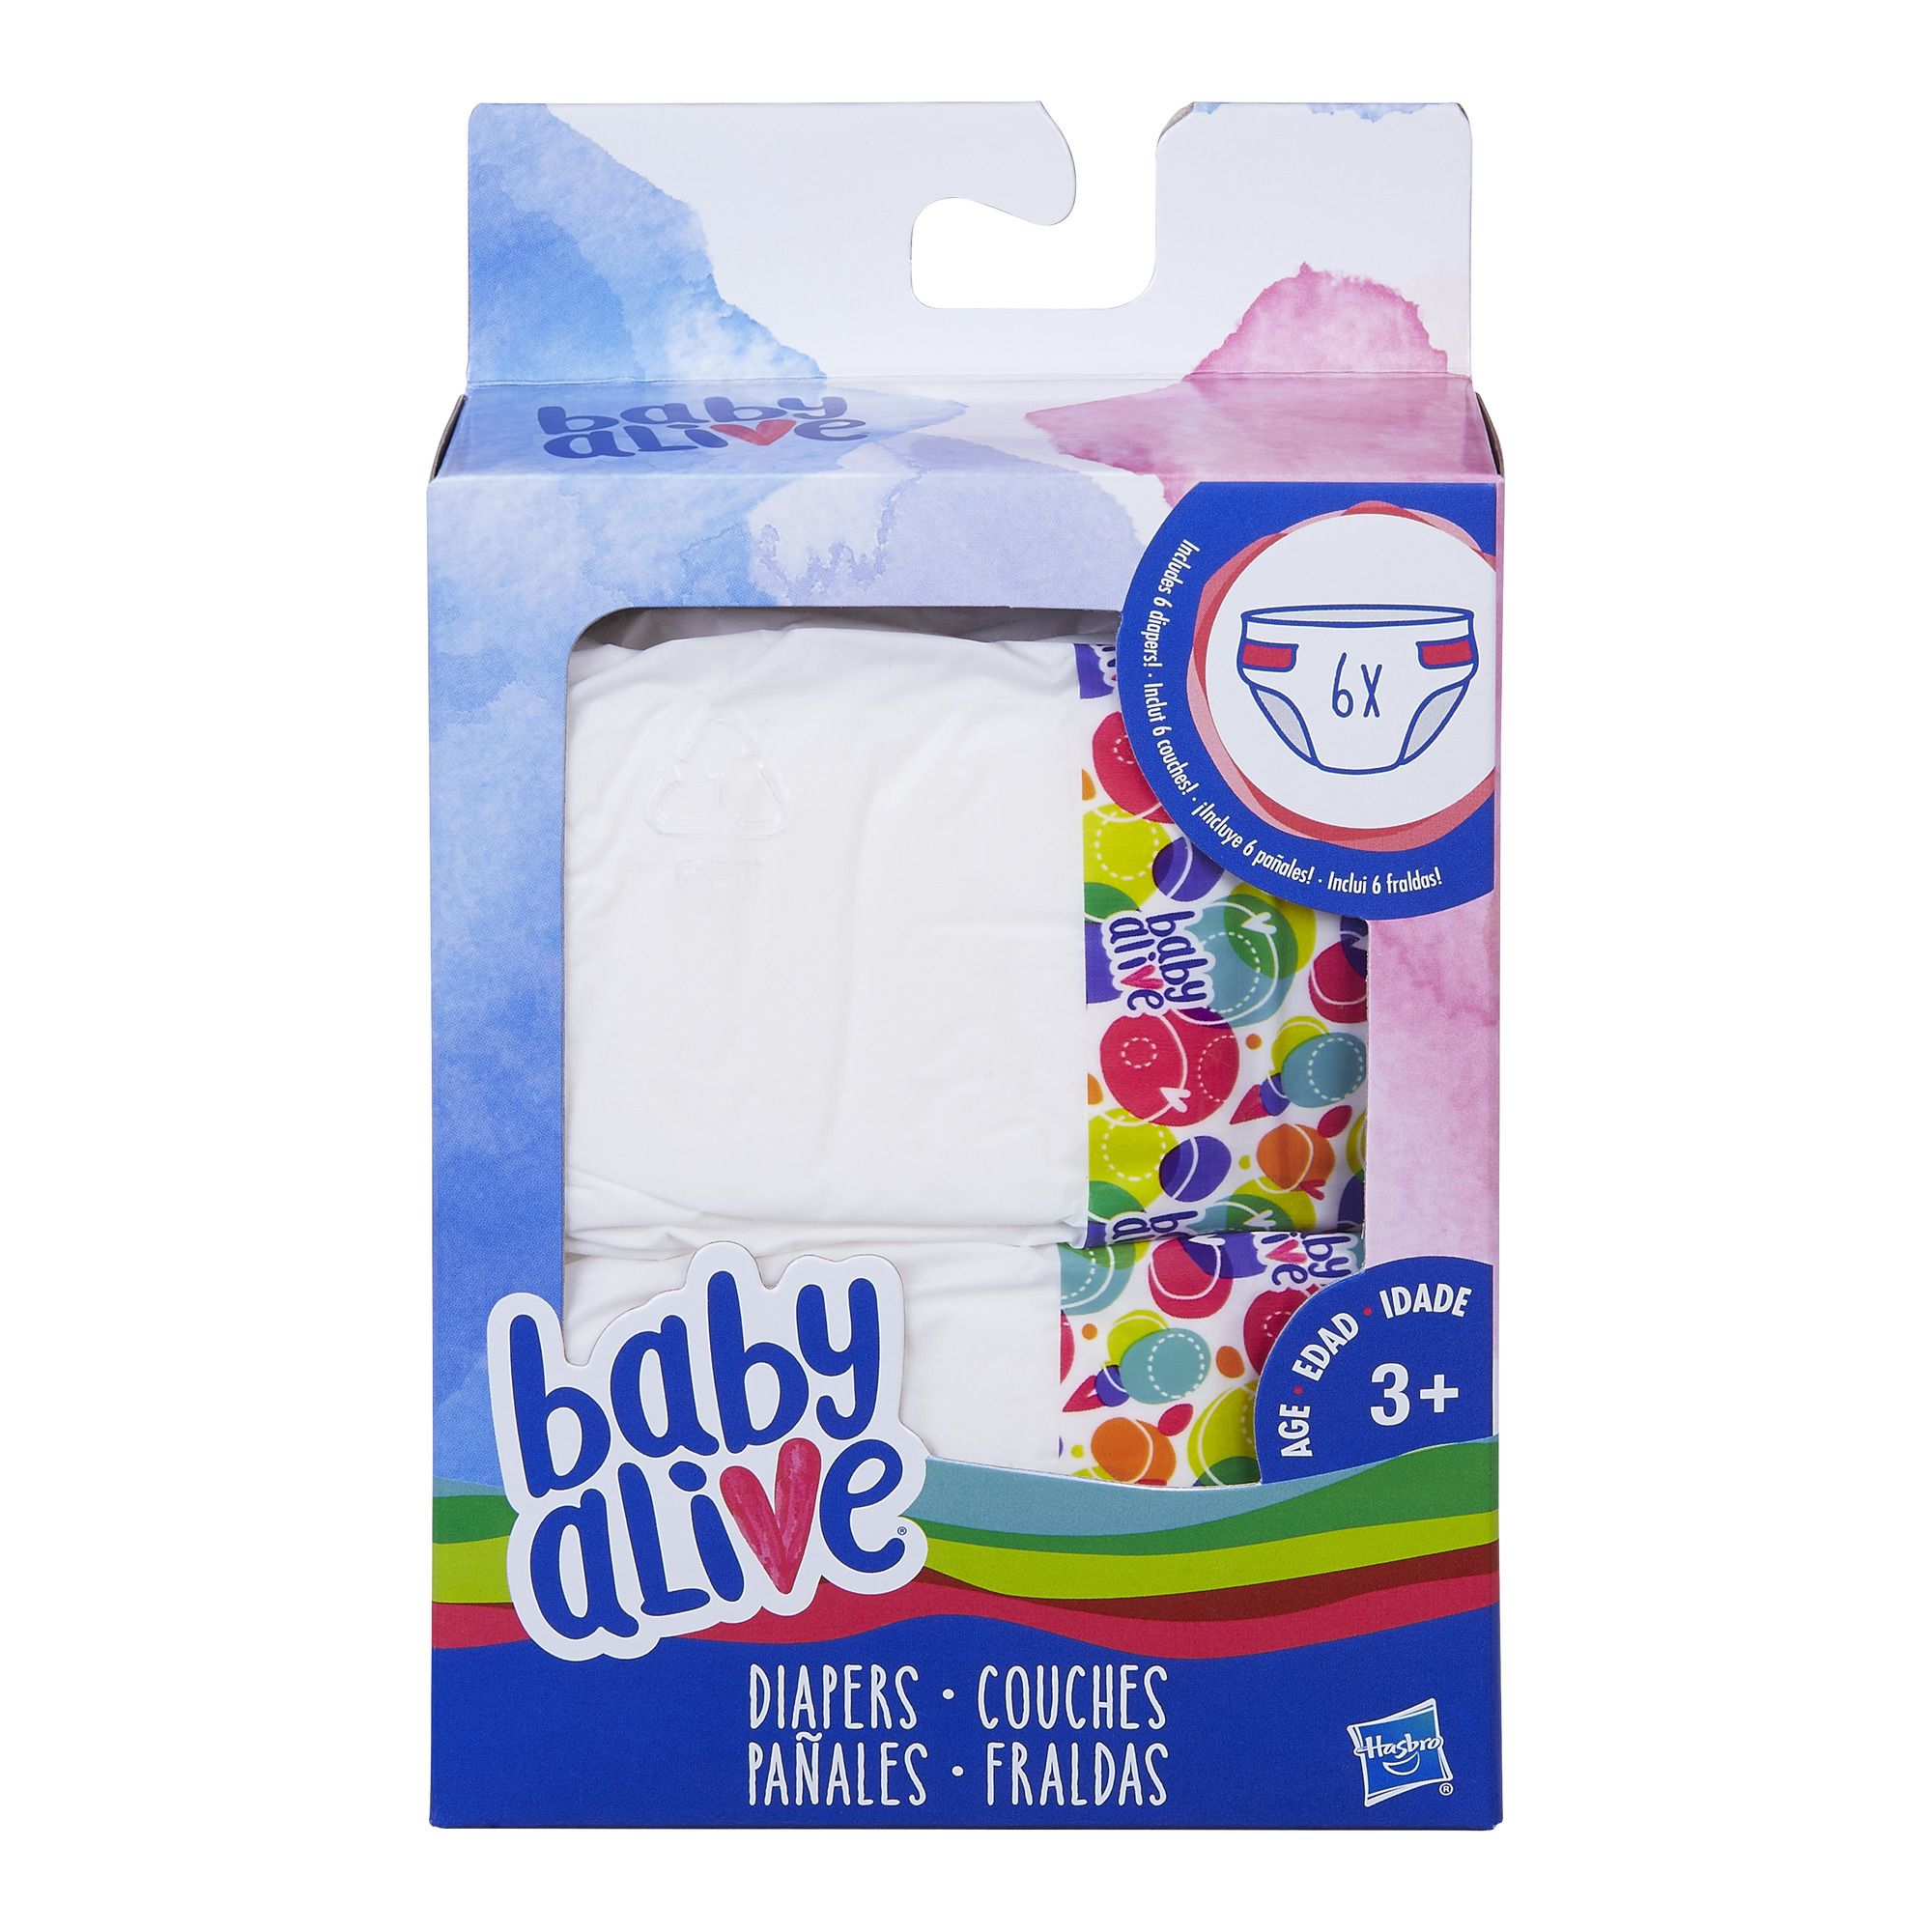 Baby alive 6 pack of diaper refills for baby alive dolls